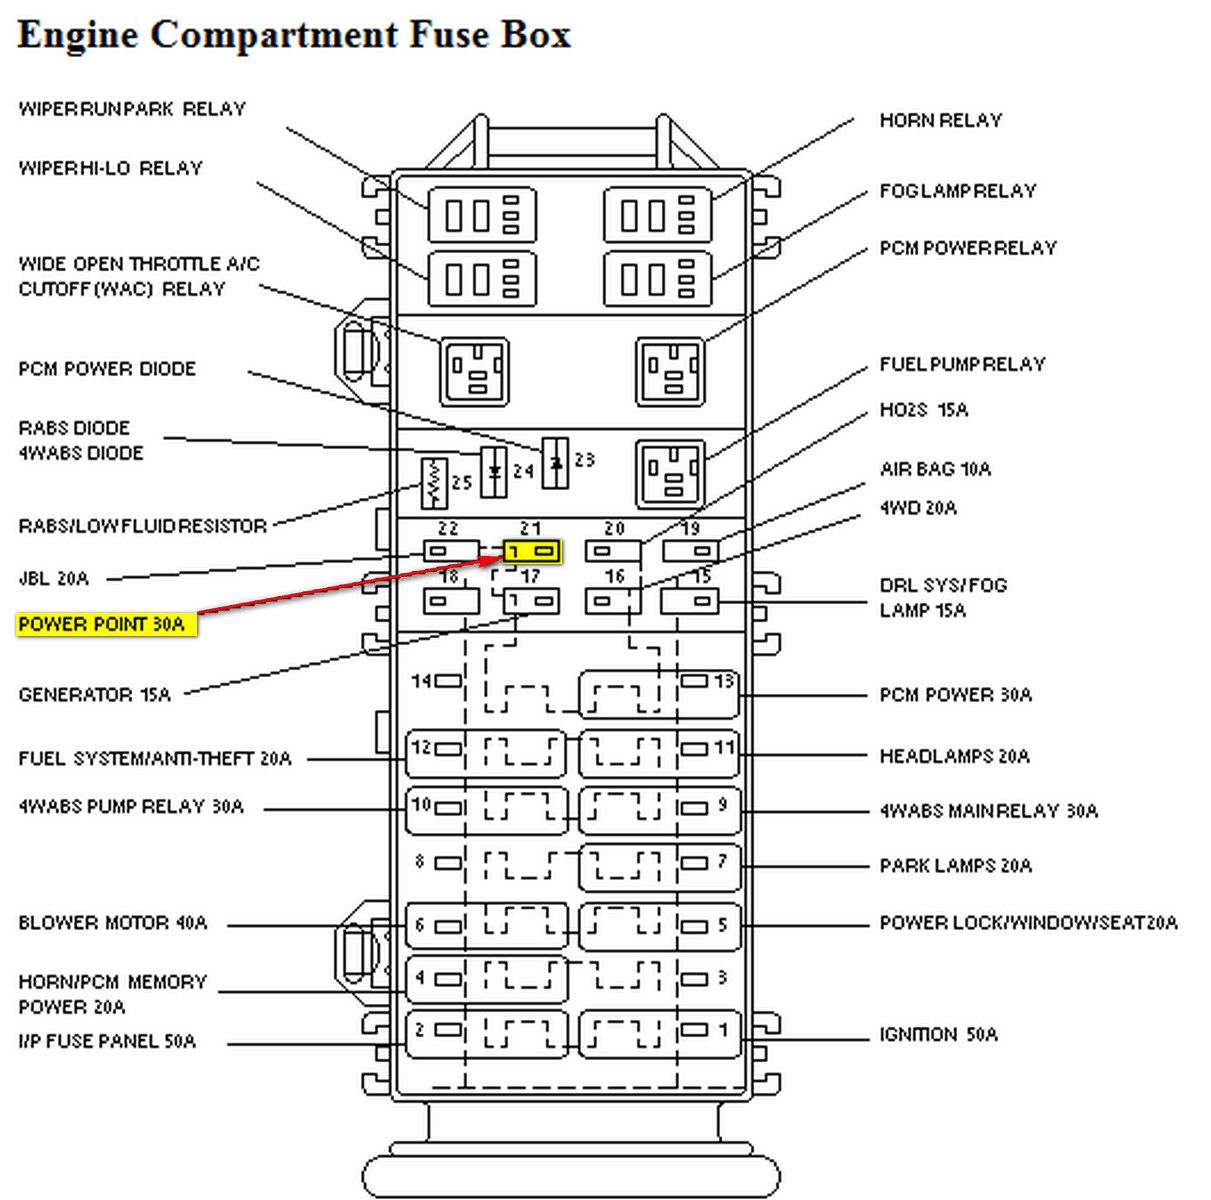 2002 ford ranger fuse diagram 1997 ford ranger fuse box diagram [ 1211 x 1200 Pixel ]